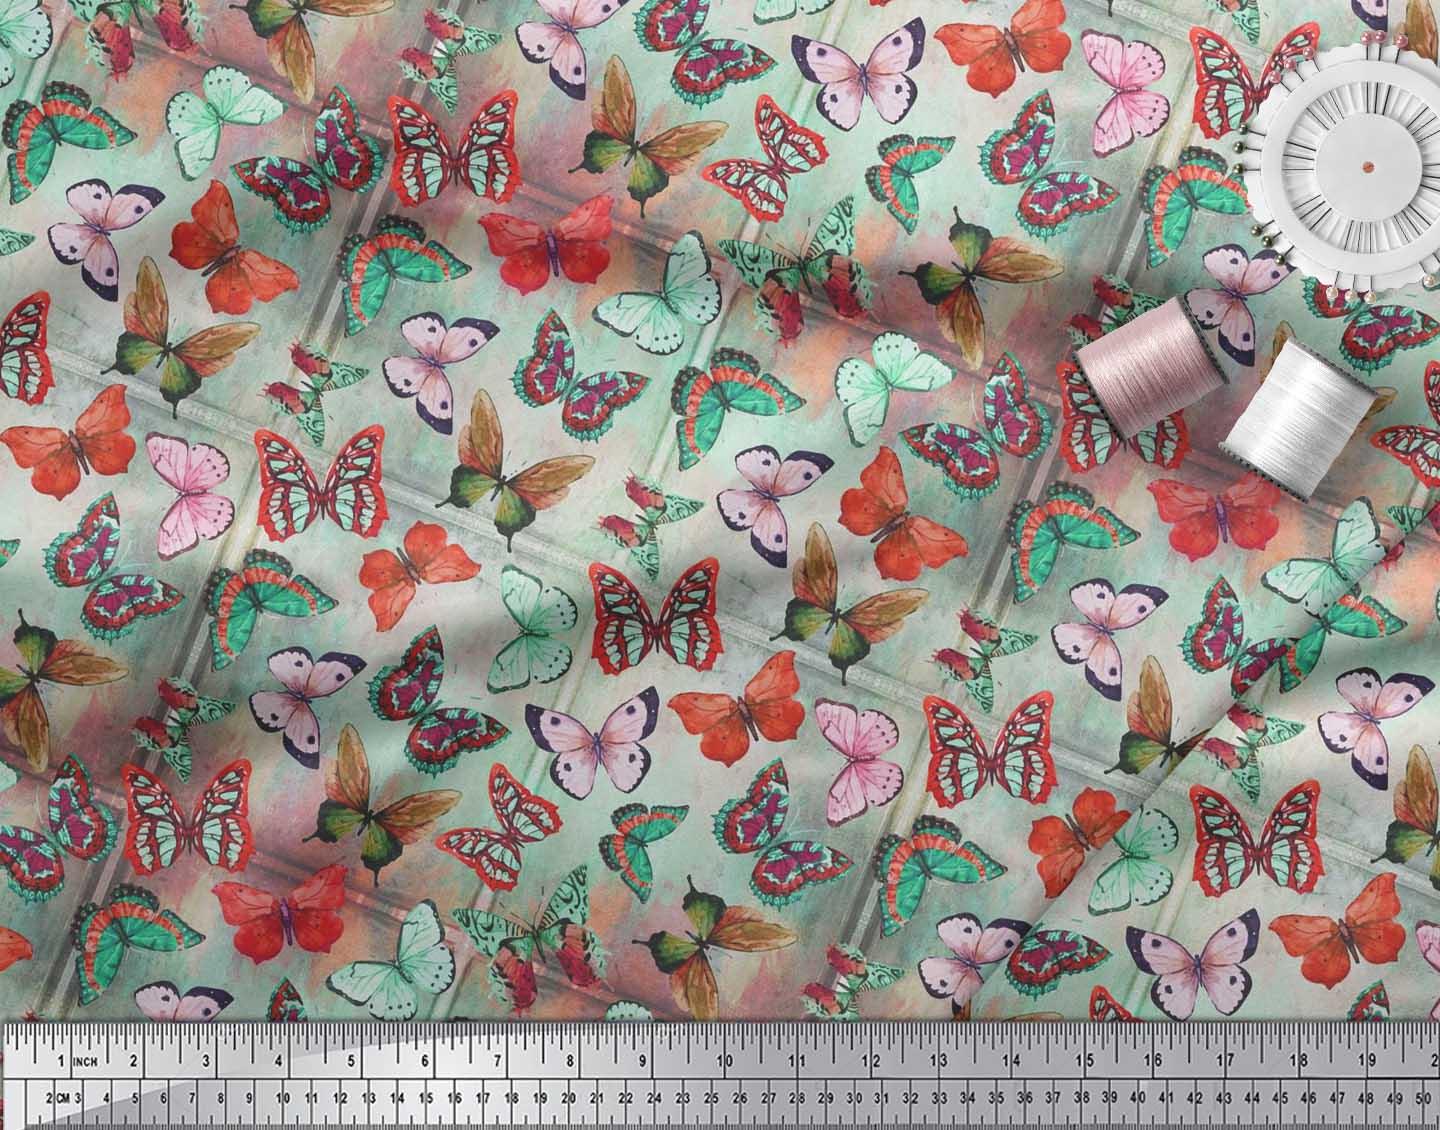 Soimoi-Cotton-Poplin-Fabric-Colorful-Butterfly-Decor-Fabric-Printed-3Fu thumbnail 3